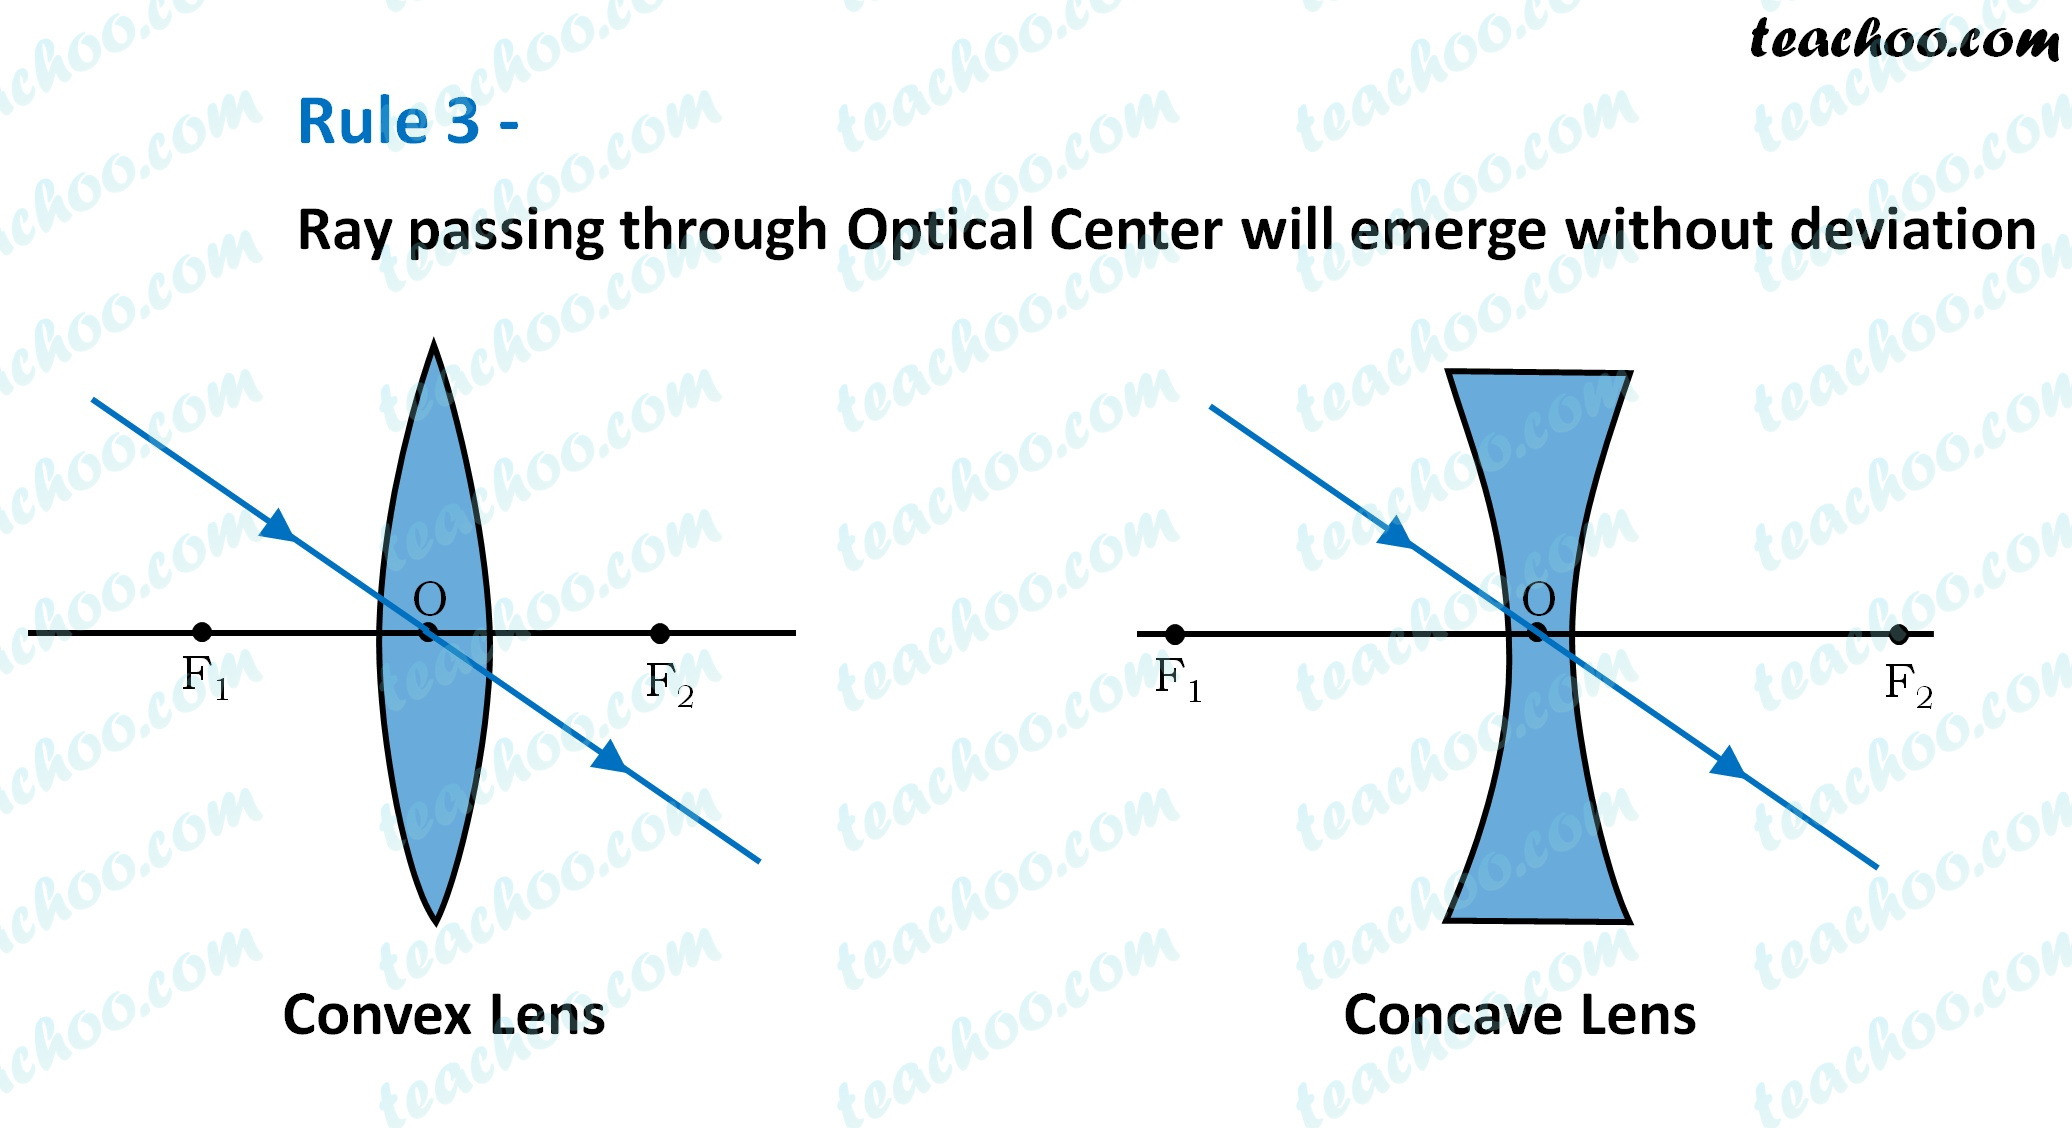 rule-3---ray-passing-through-optical-center-will-emerge-without-deviation---teachoo.jpg